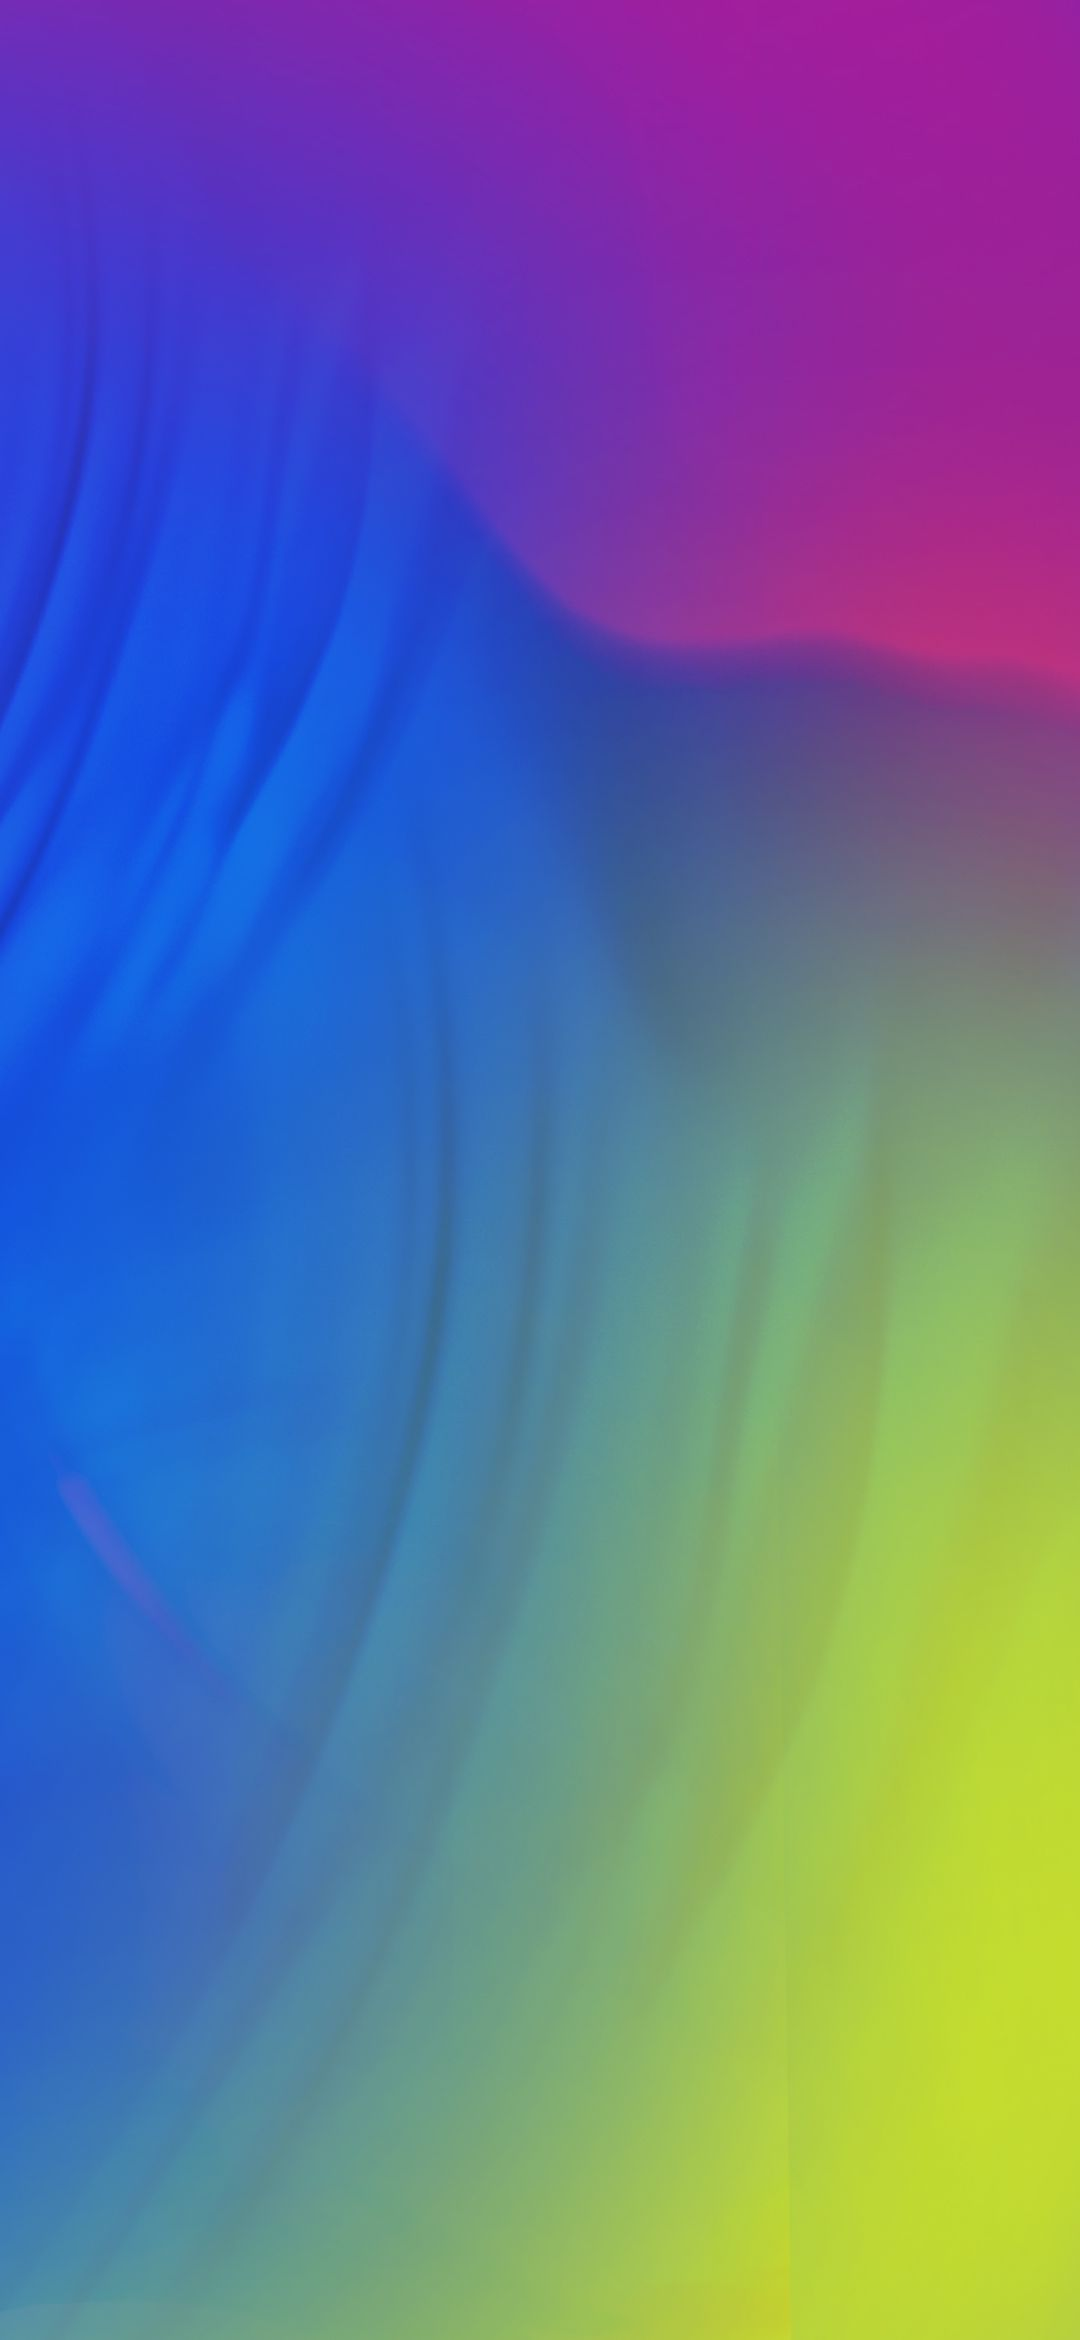 Samsung Galaxy M40 Wallpaper Ytechb Exclusive In 2020 Samsung Wallpaper Galaxy Wallpaper Samsung Galaxy Wallpaper